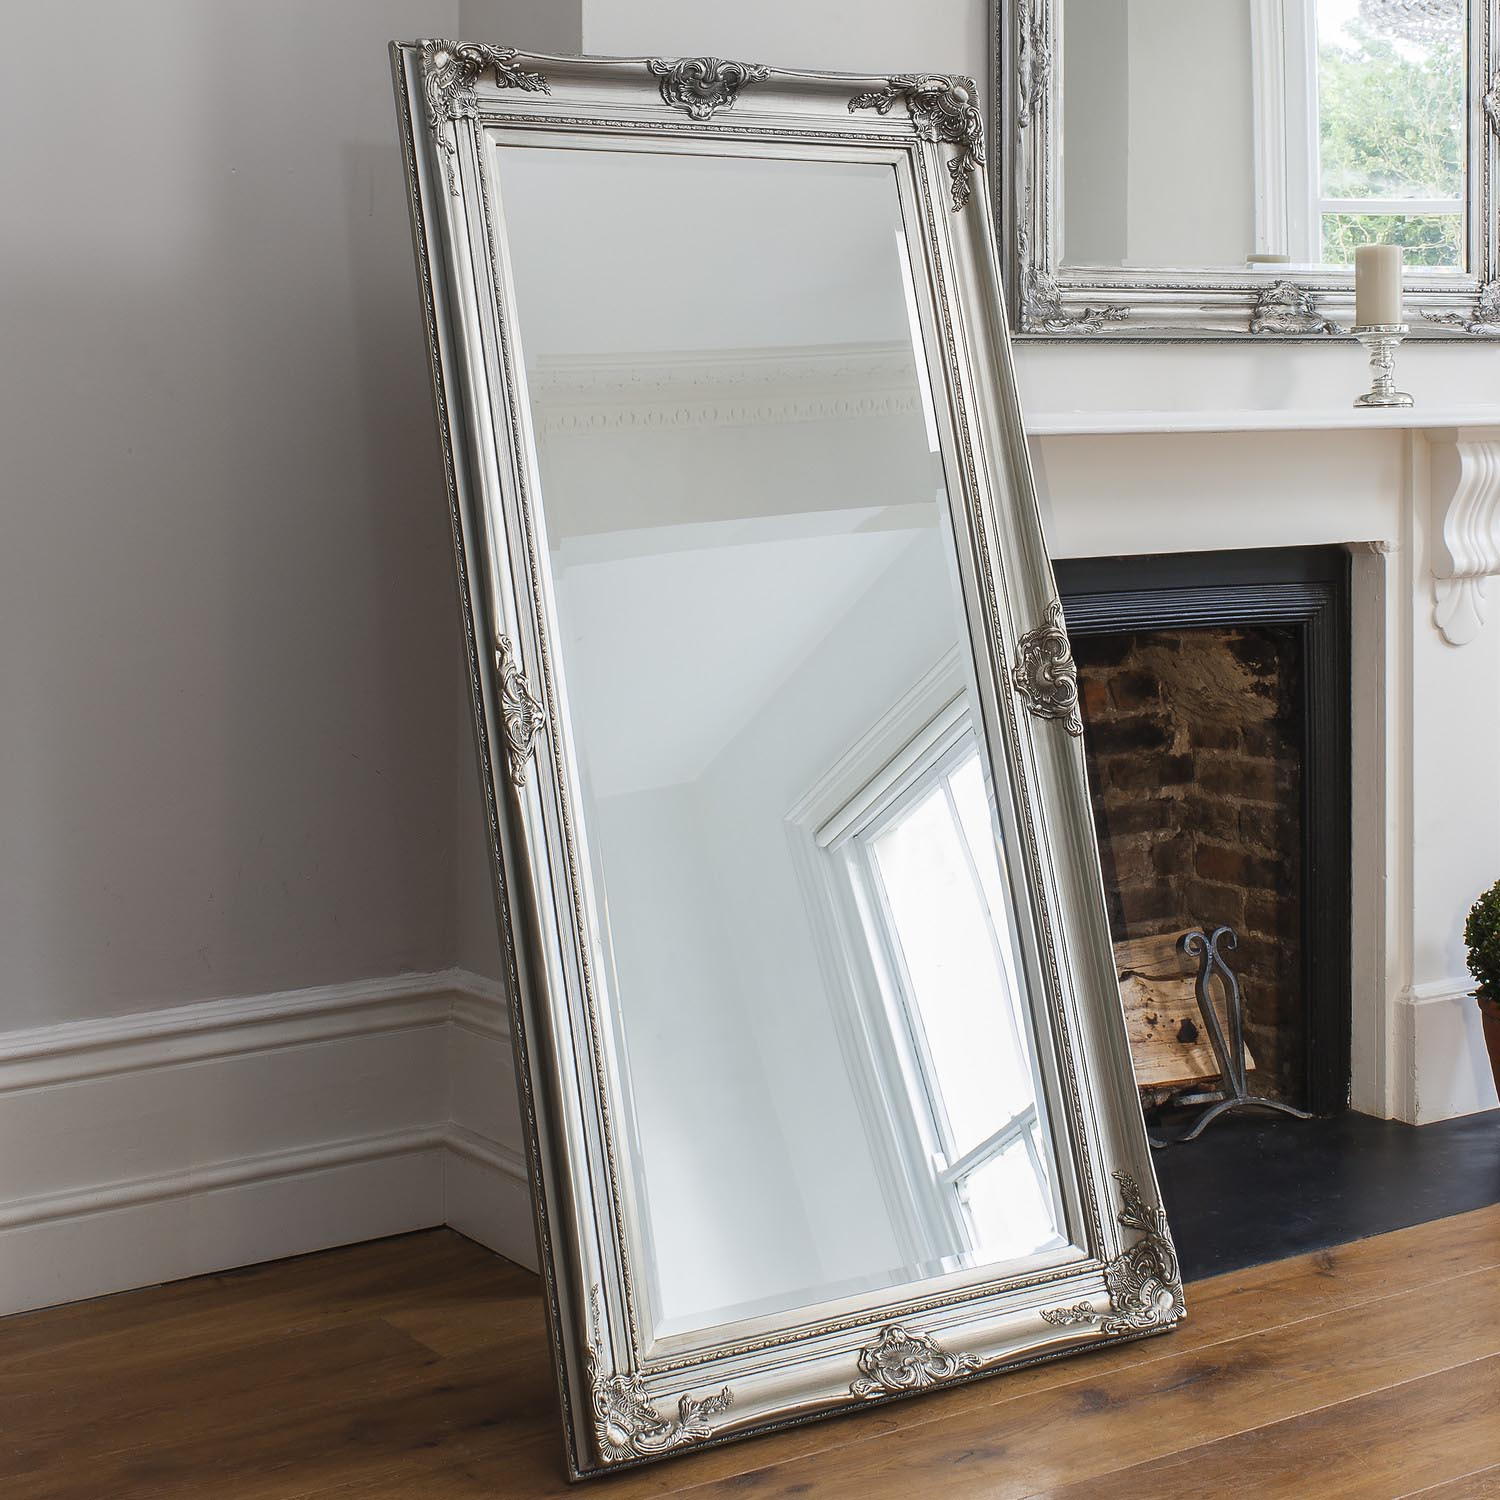 Large floor standing mirrors cheap best decor things for Affordable large mirrors